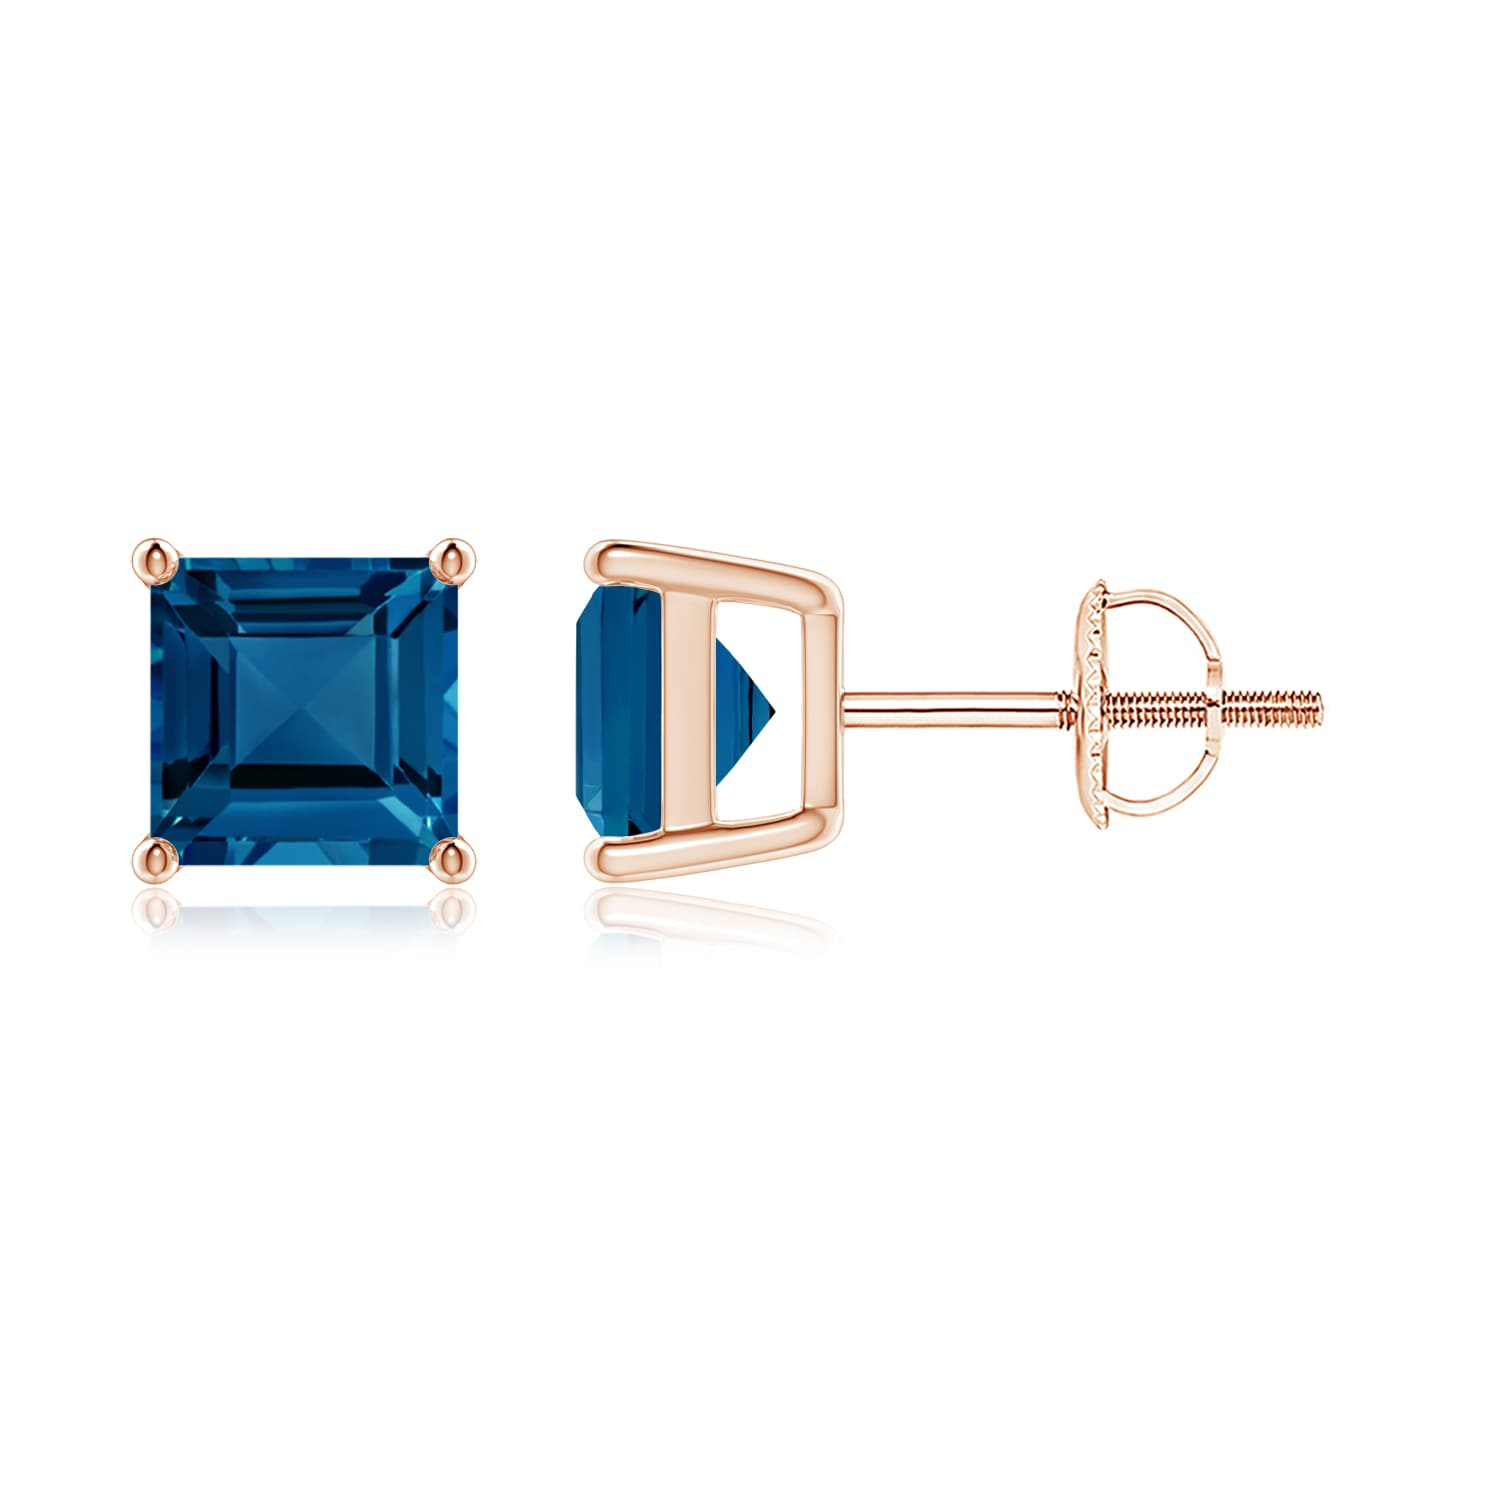 eb4950ca3052 Angara - Mother's Day Jewelry Sale - Classic Basket-Set Square London Blue  Topaz Stud Earrings in Silver (6mm London Blue Topaz) - SE0105LBT-SL-AAA-6  ...